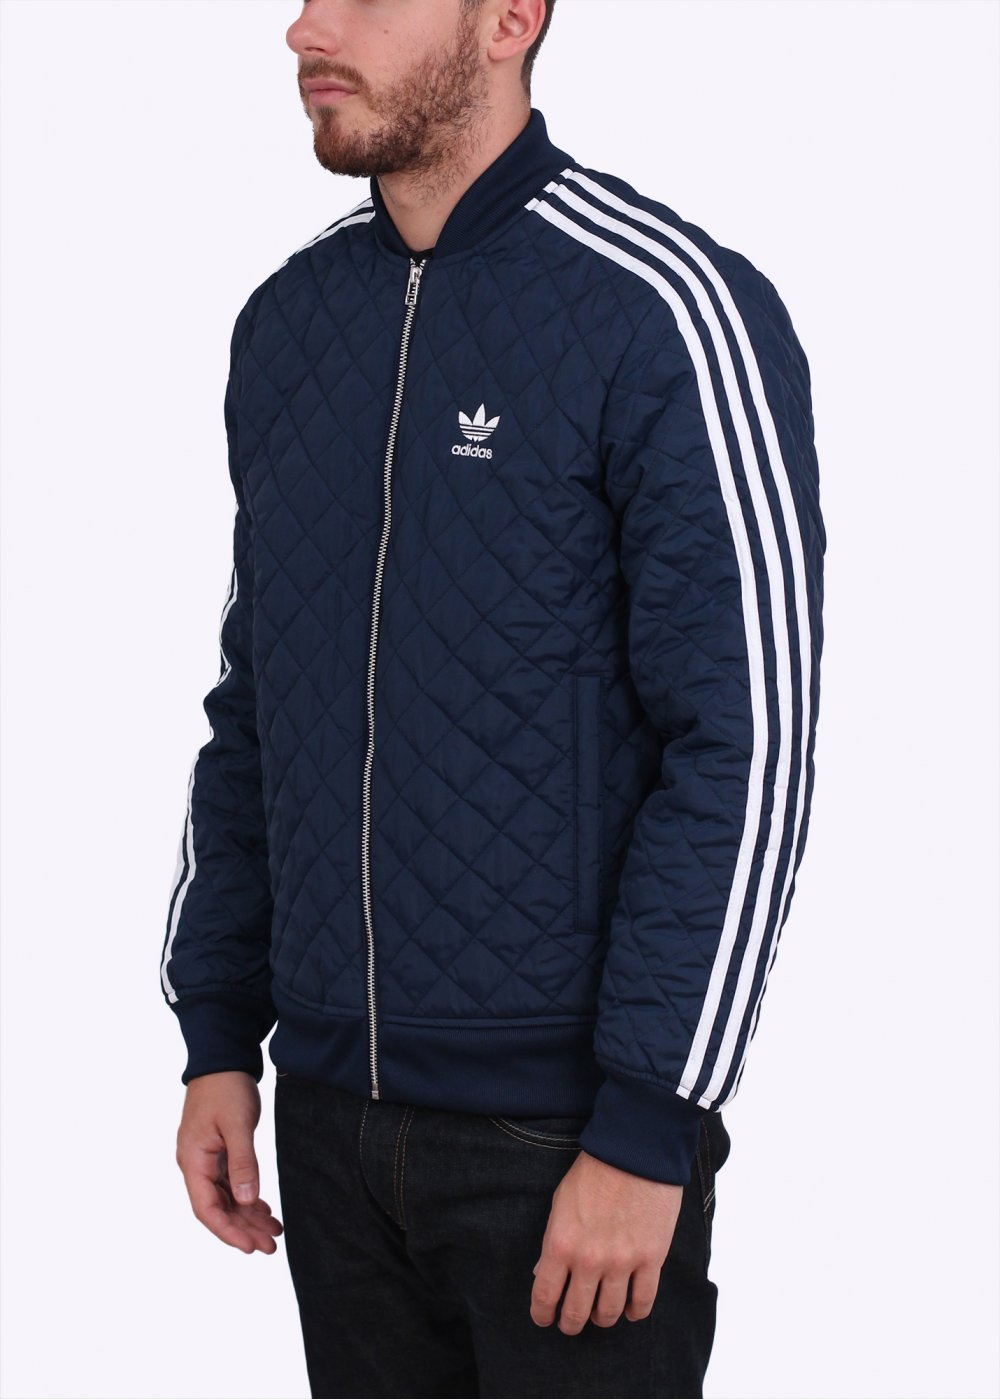 adidas originals quilted bomber jacket